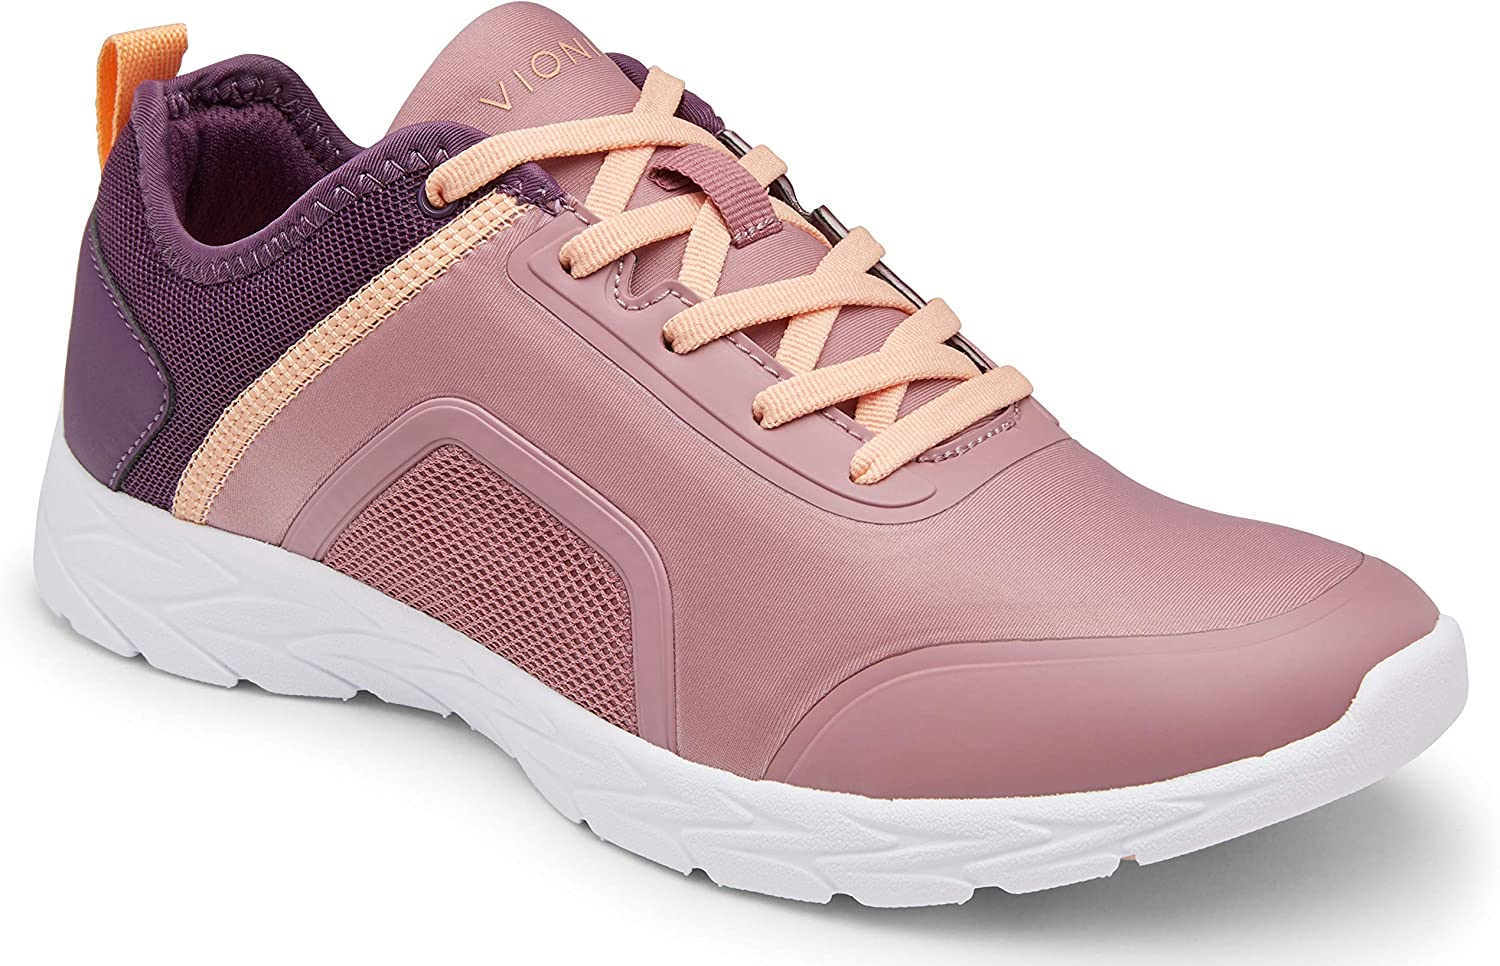 Vionic Women's Brisk Maya Walking Shoes- Ladies Everyday Sneaker with Concealed Orthotic Arch Support